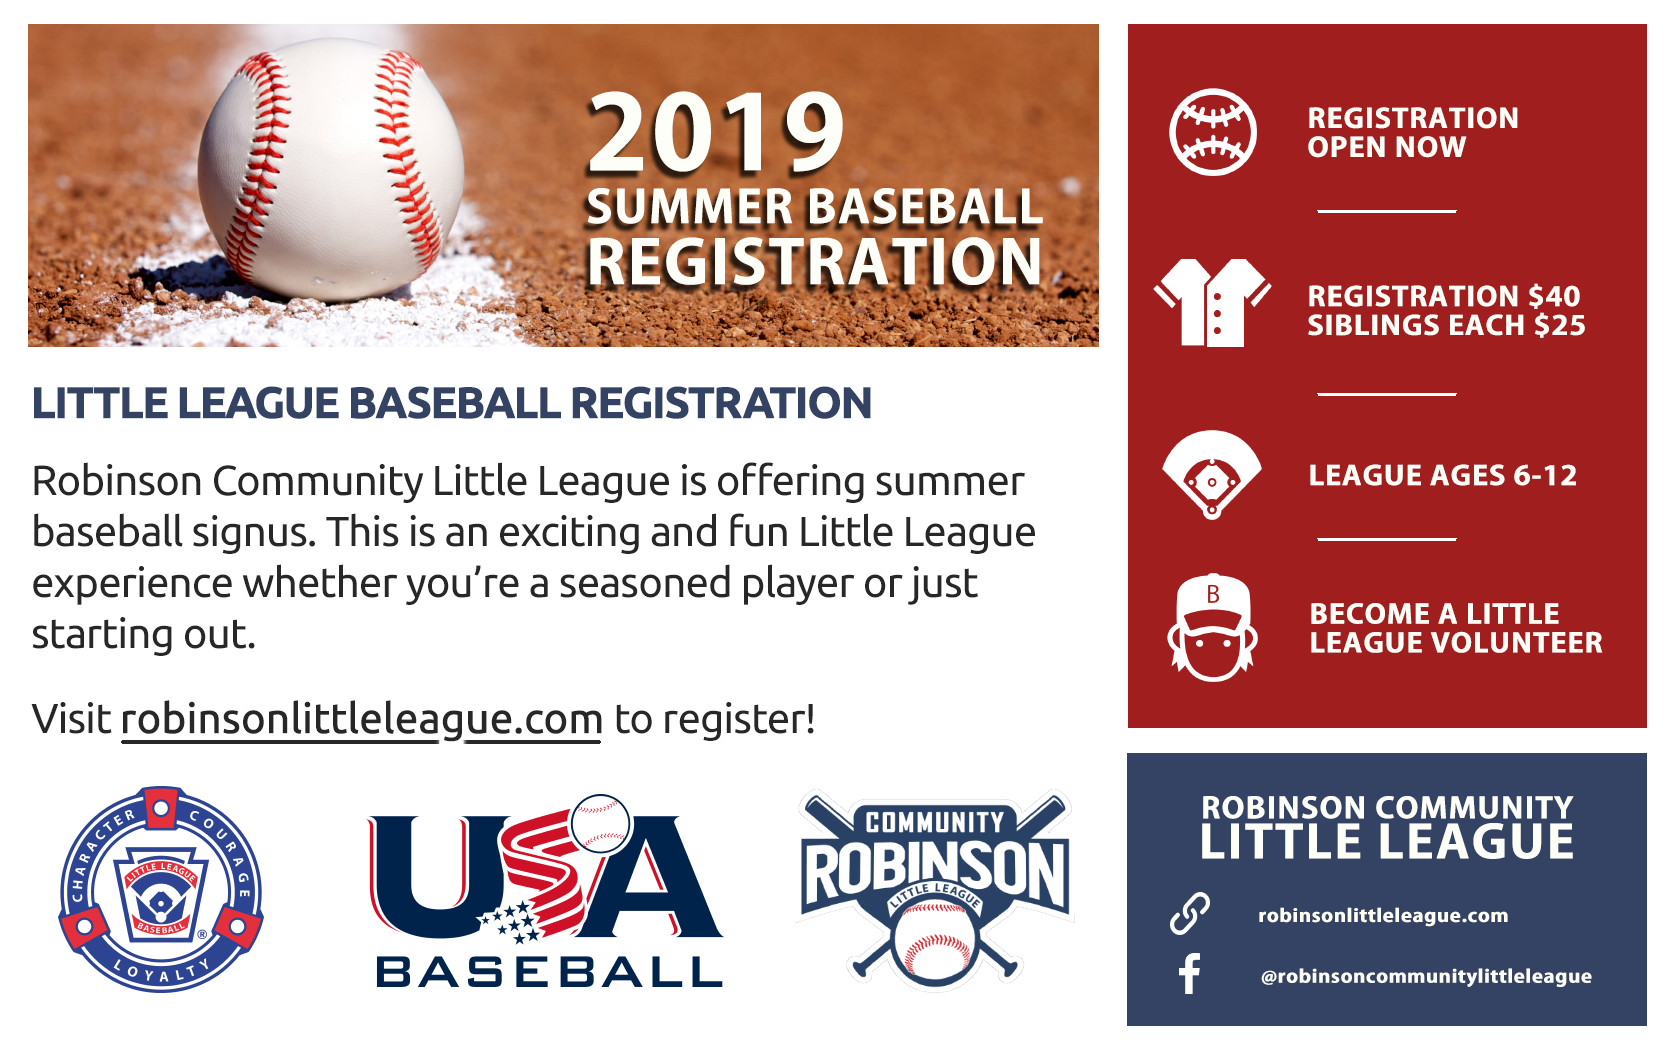 2019 Summer Baseball Registration